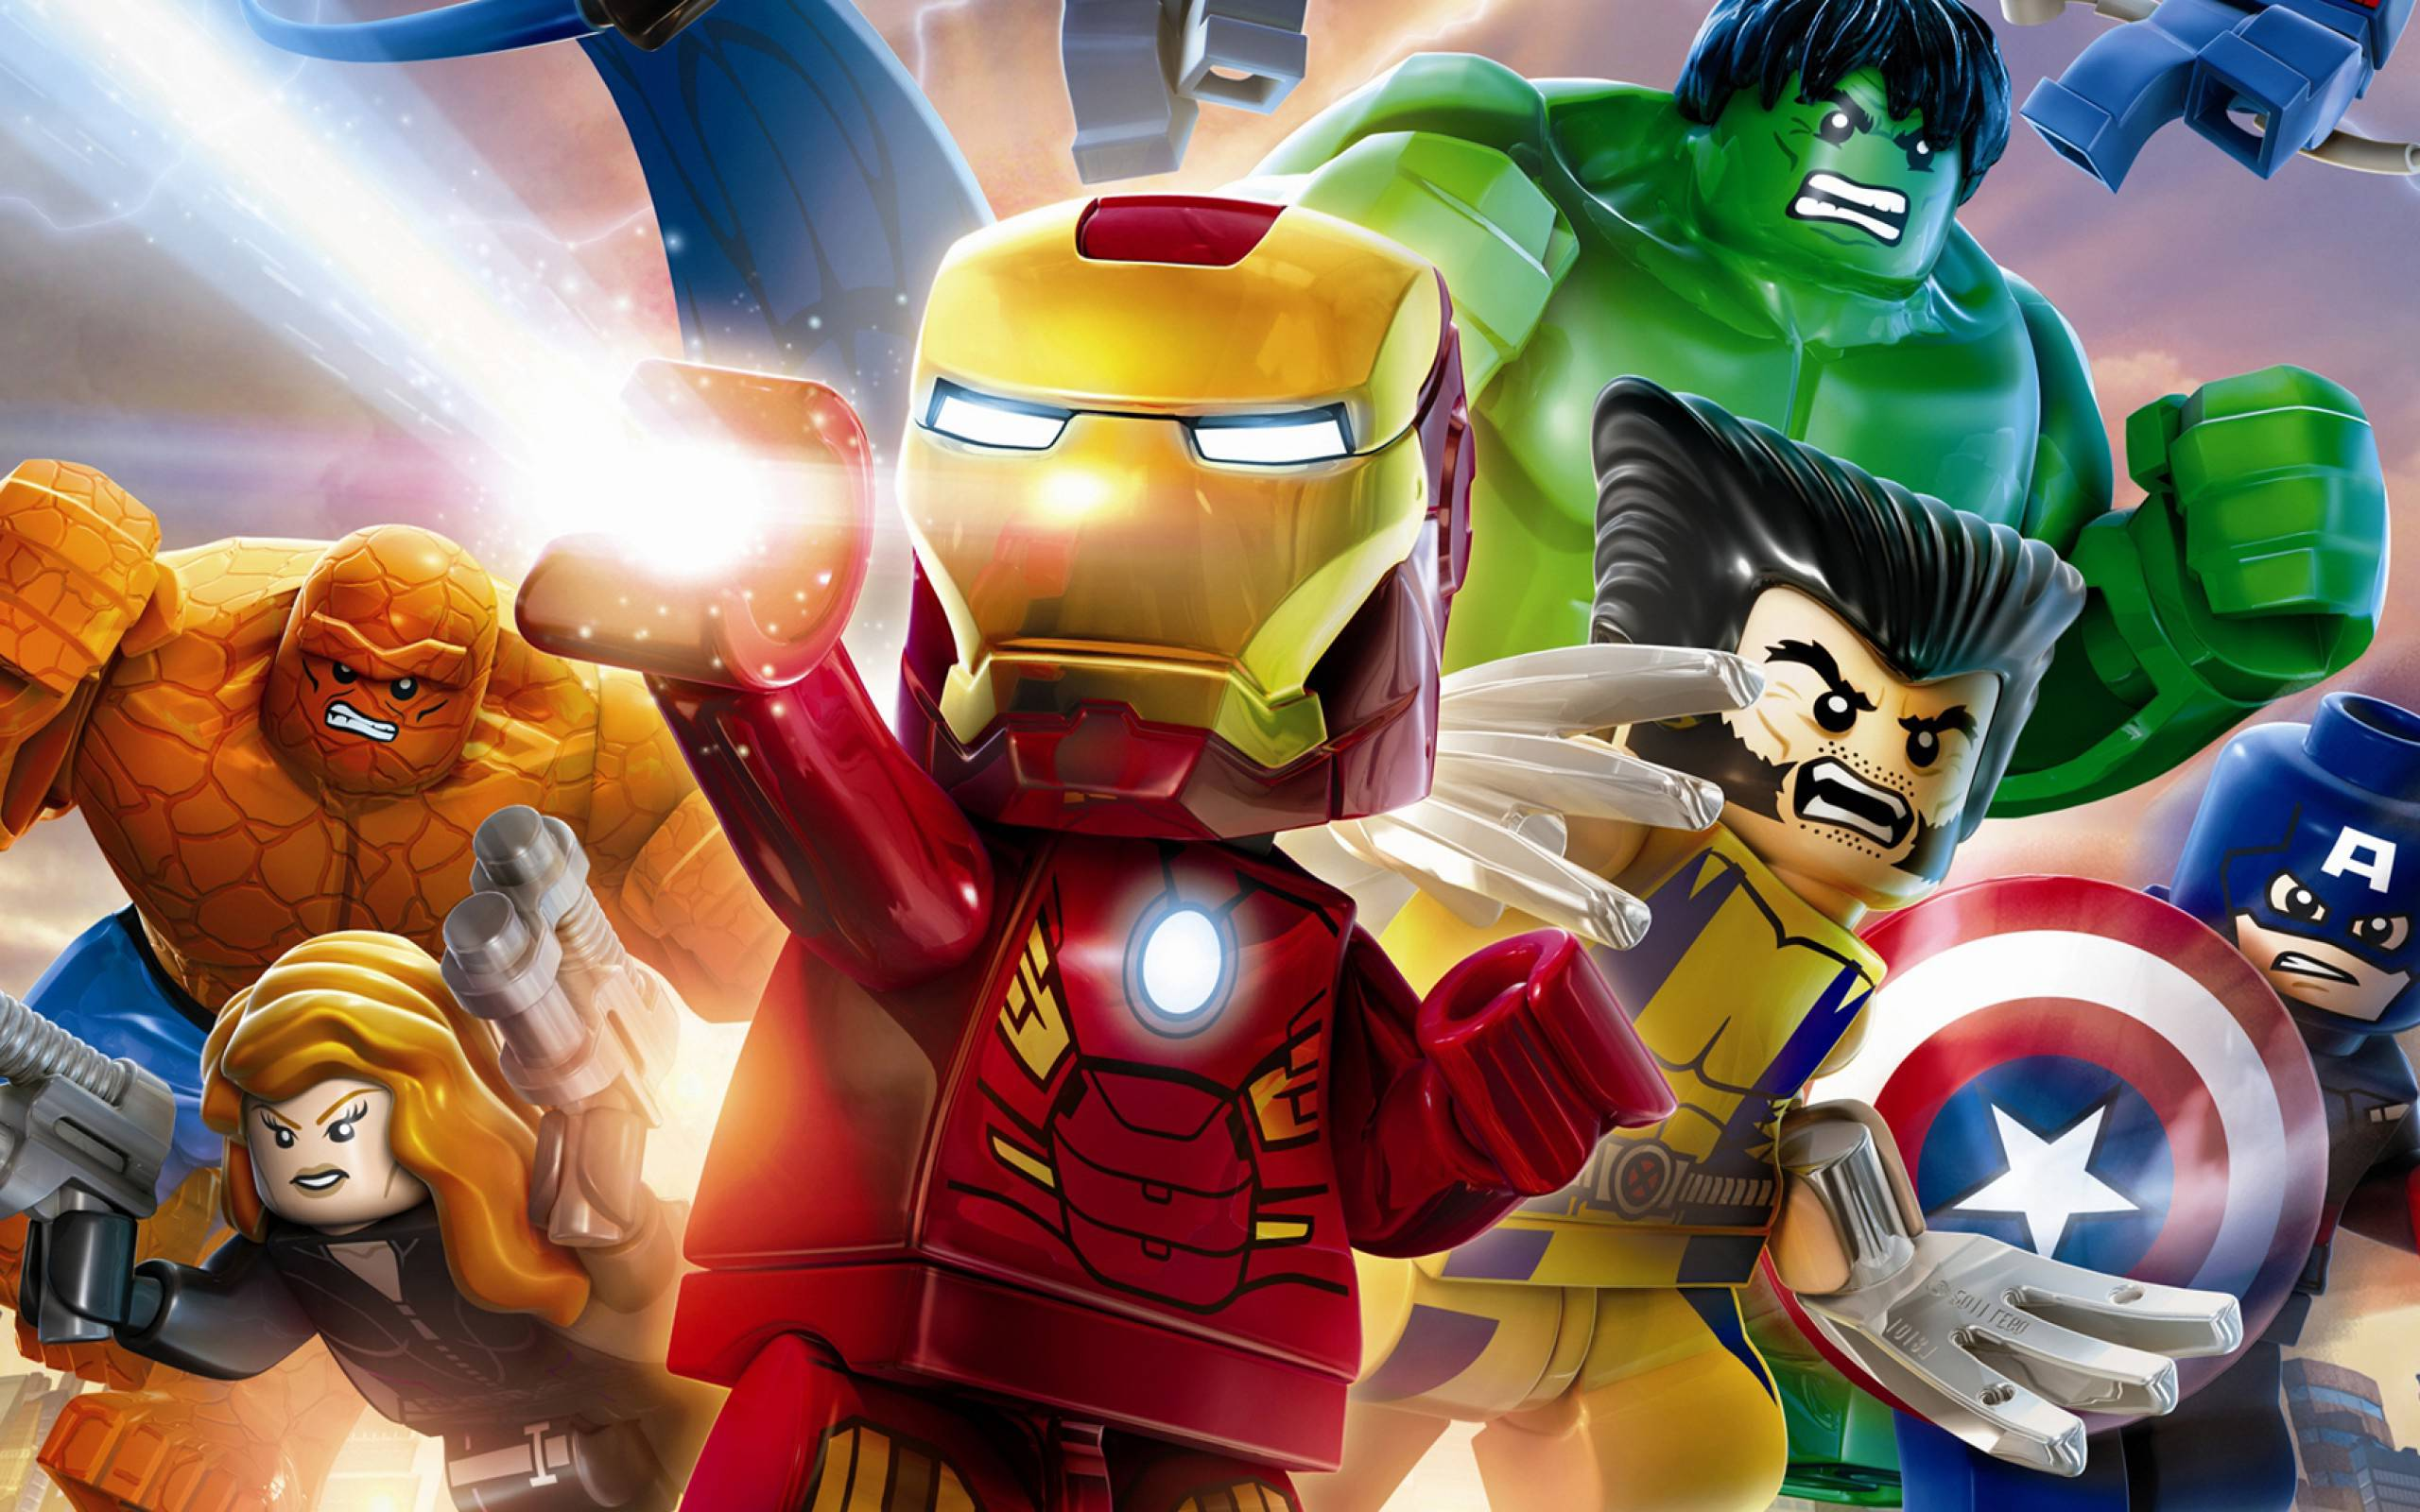 Lego Marvel Avengers Wallpapers Top Free Lego Marvel Avengers Backgrounds Wallpaperaccess